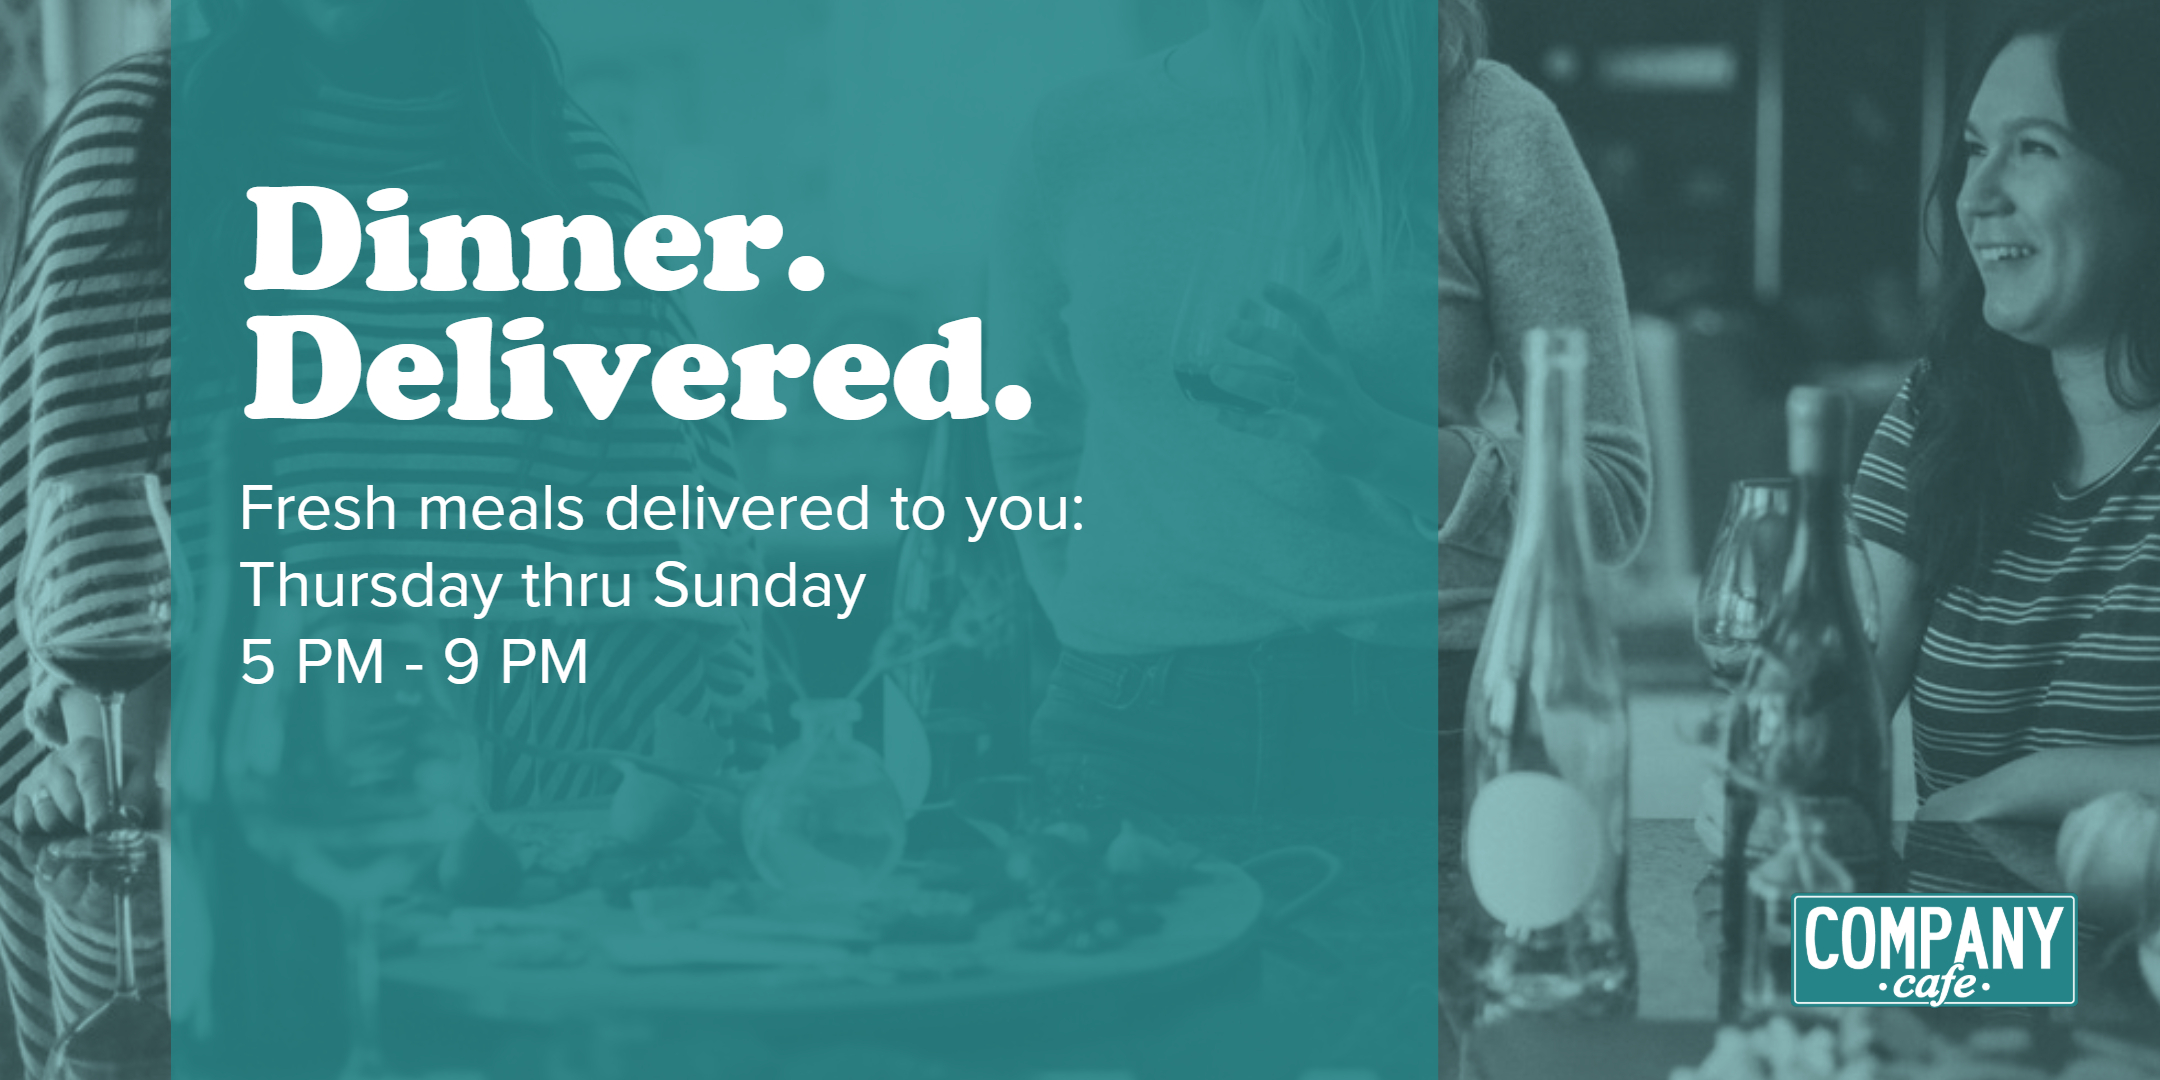 Company Cafe dinner delivery